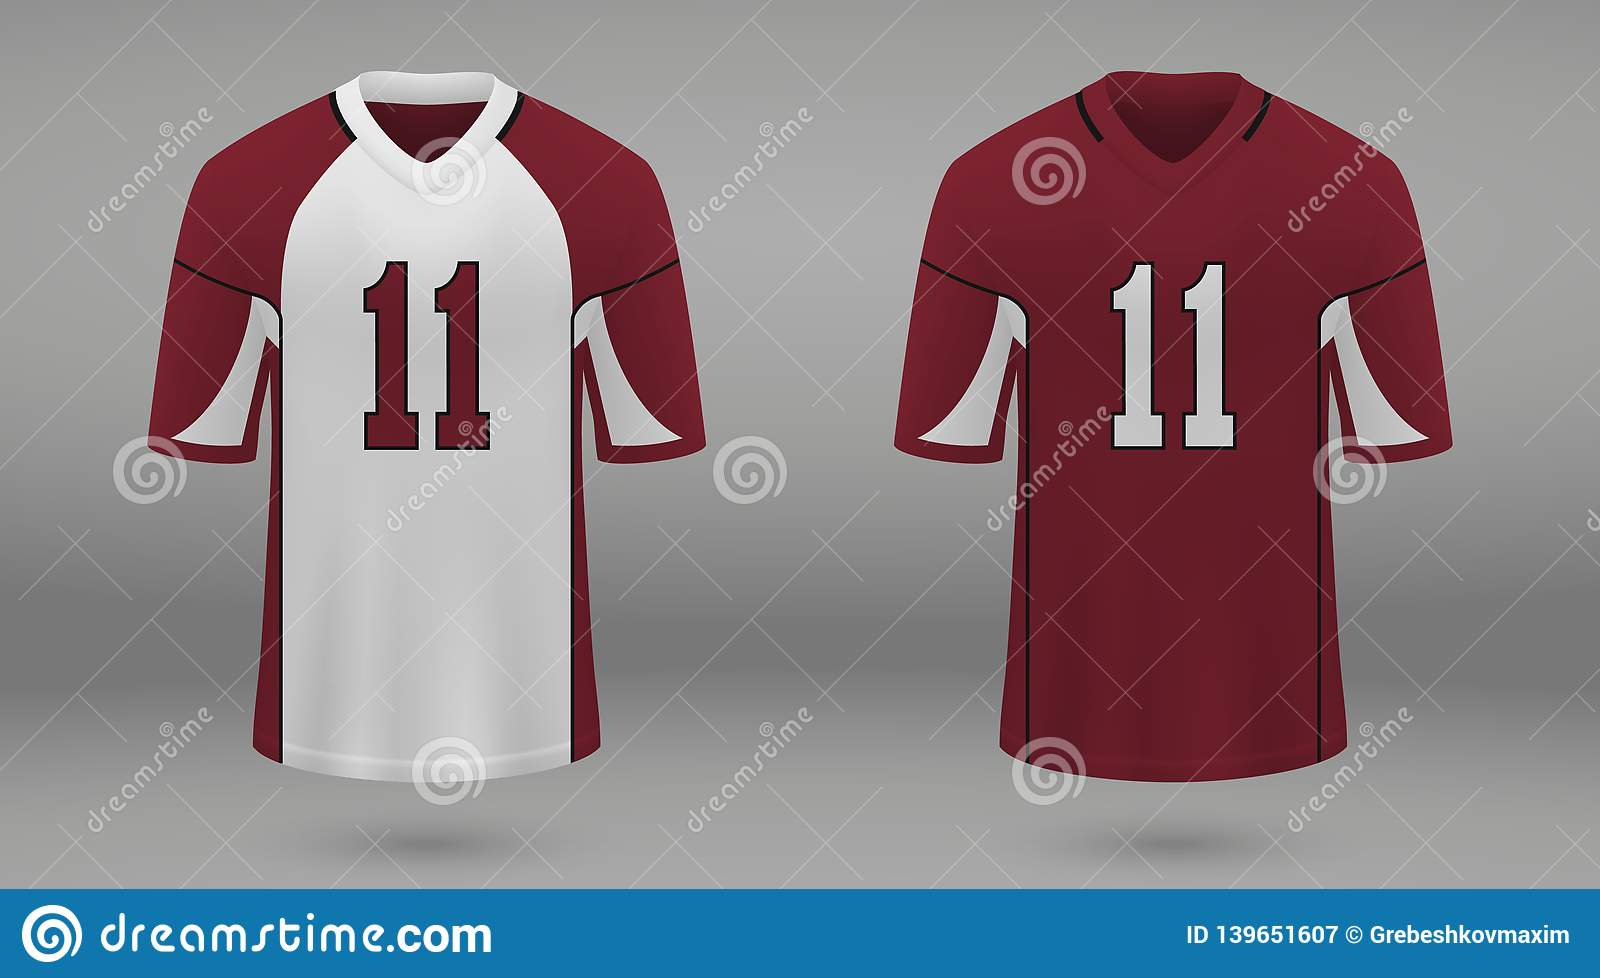 e9d3fb19503 Realistic american football jersey Arizona Cardinals, shirt template for kit.  Vector illustration. More similar stock illustrations